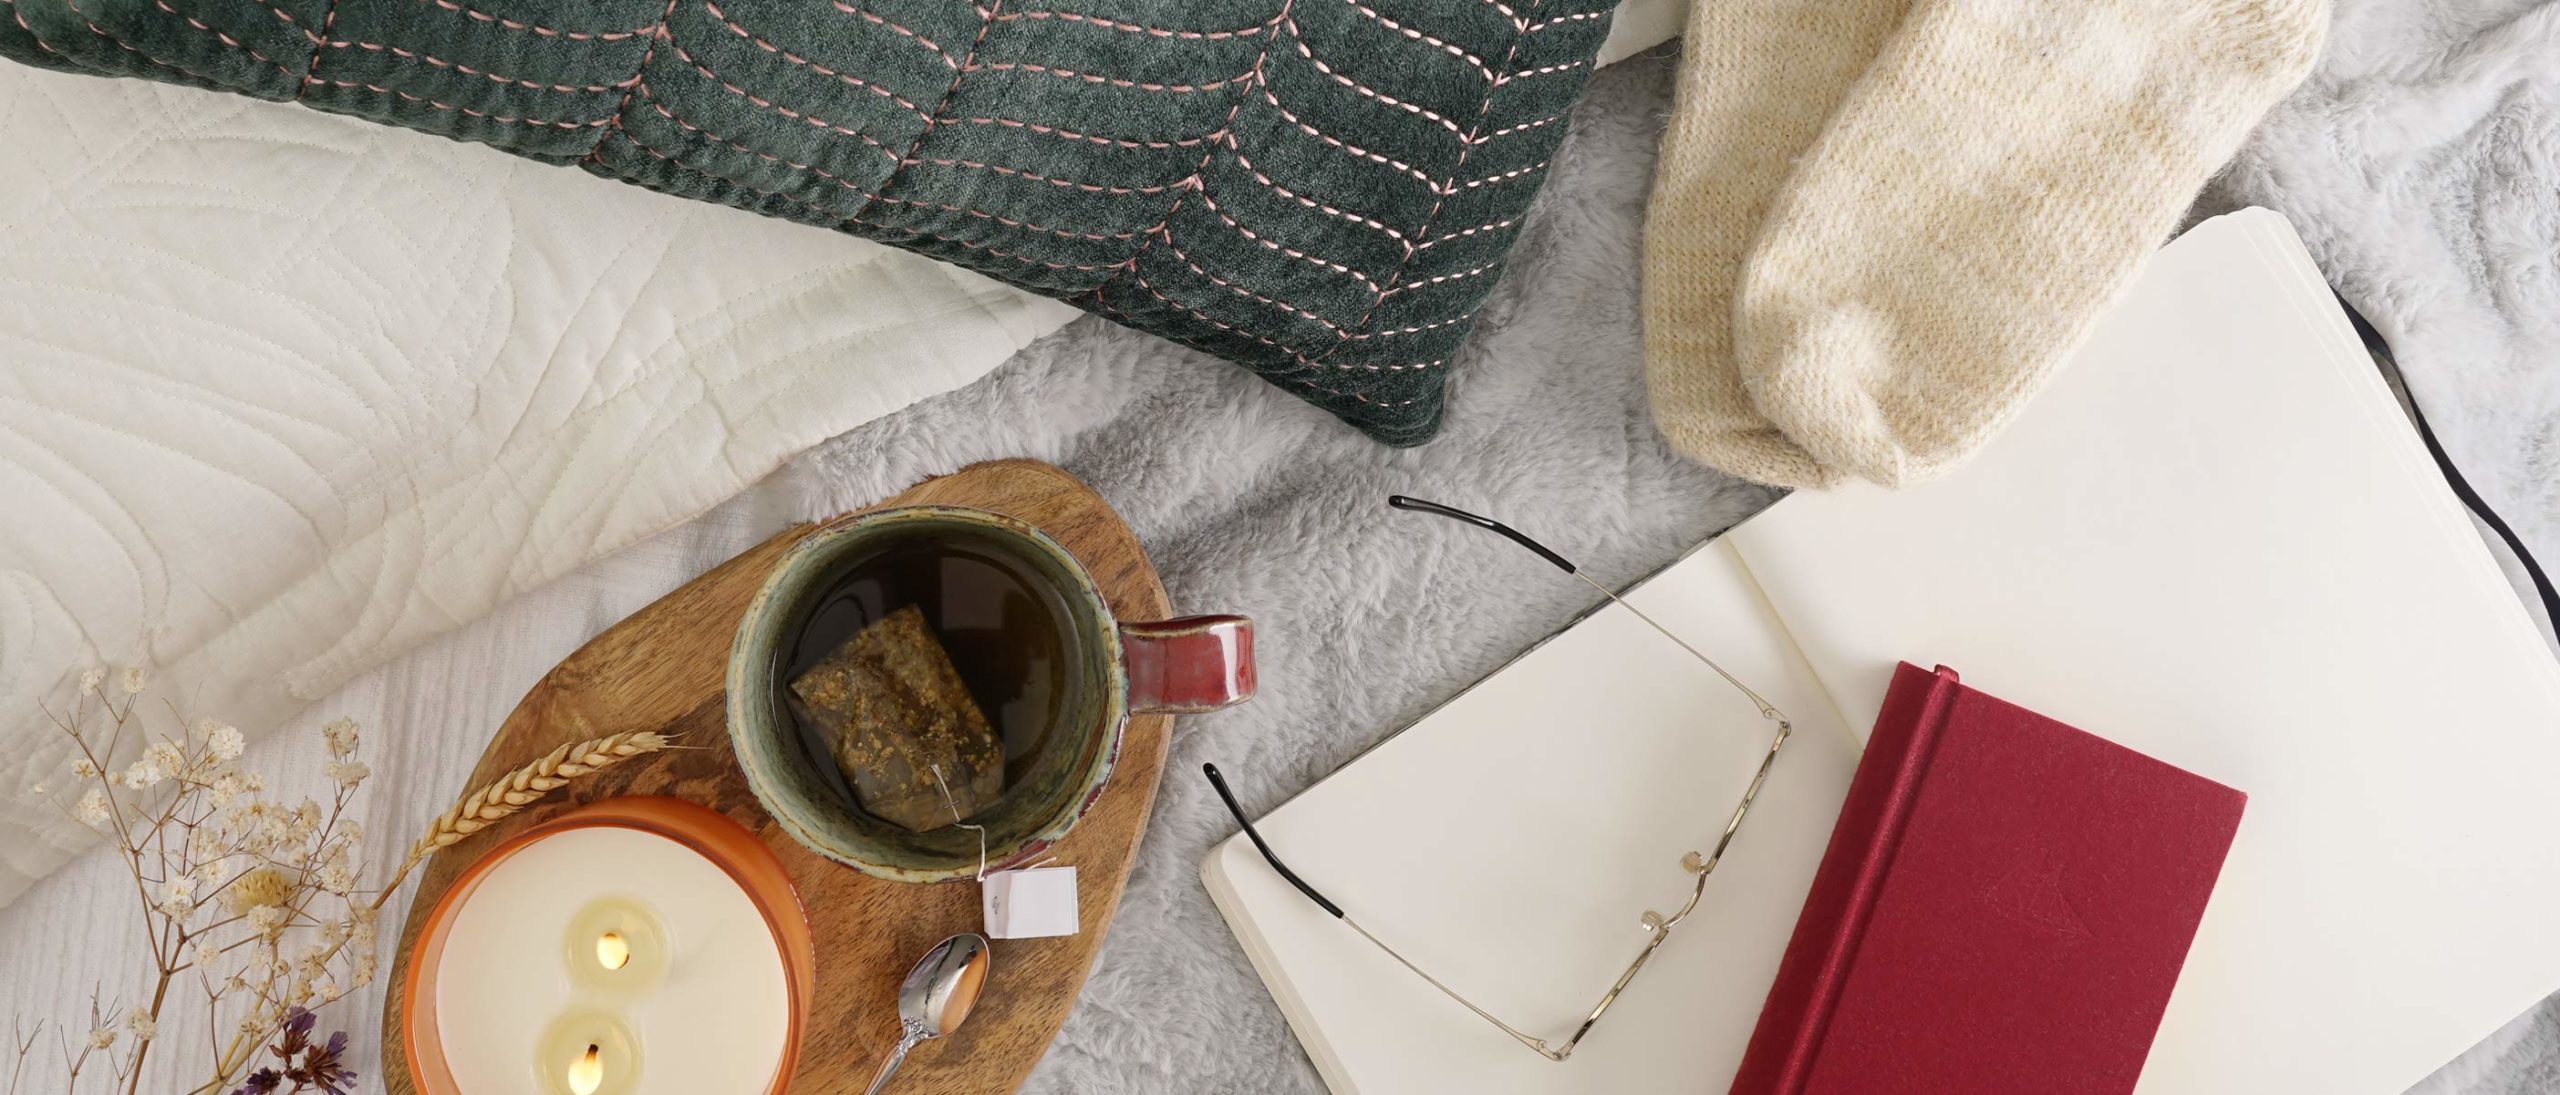 Close-up view of cozy cup of tea next to a lit candle, open notebook, and socks.